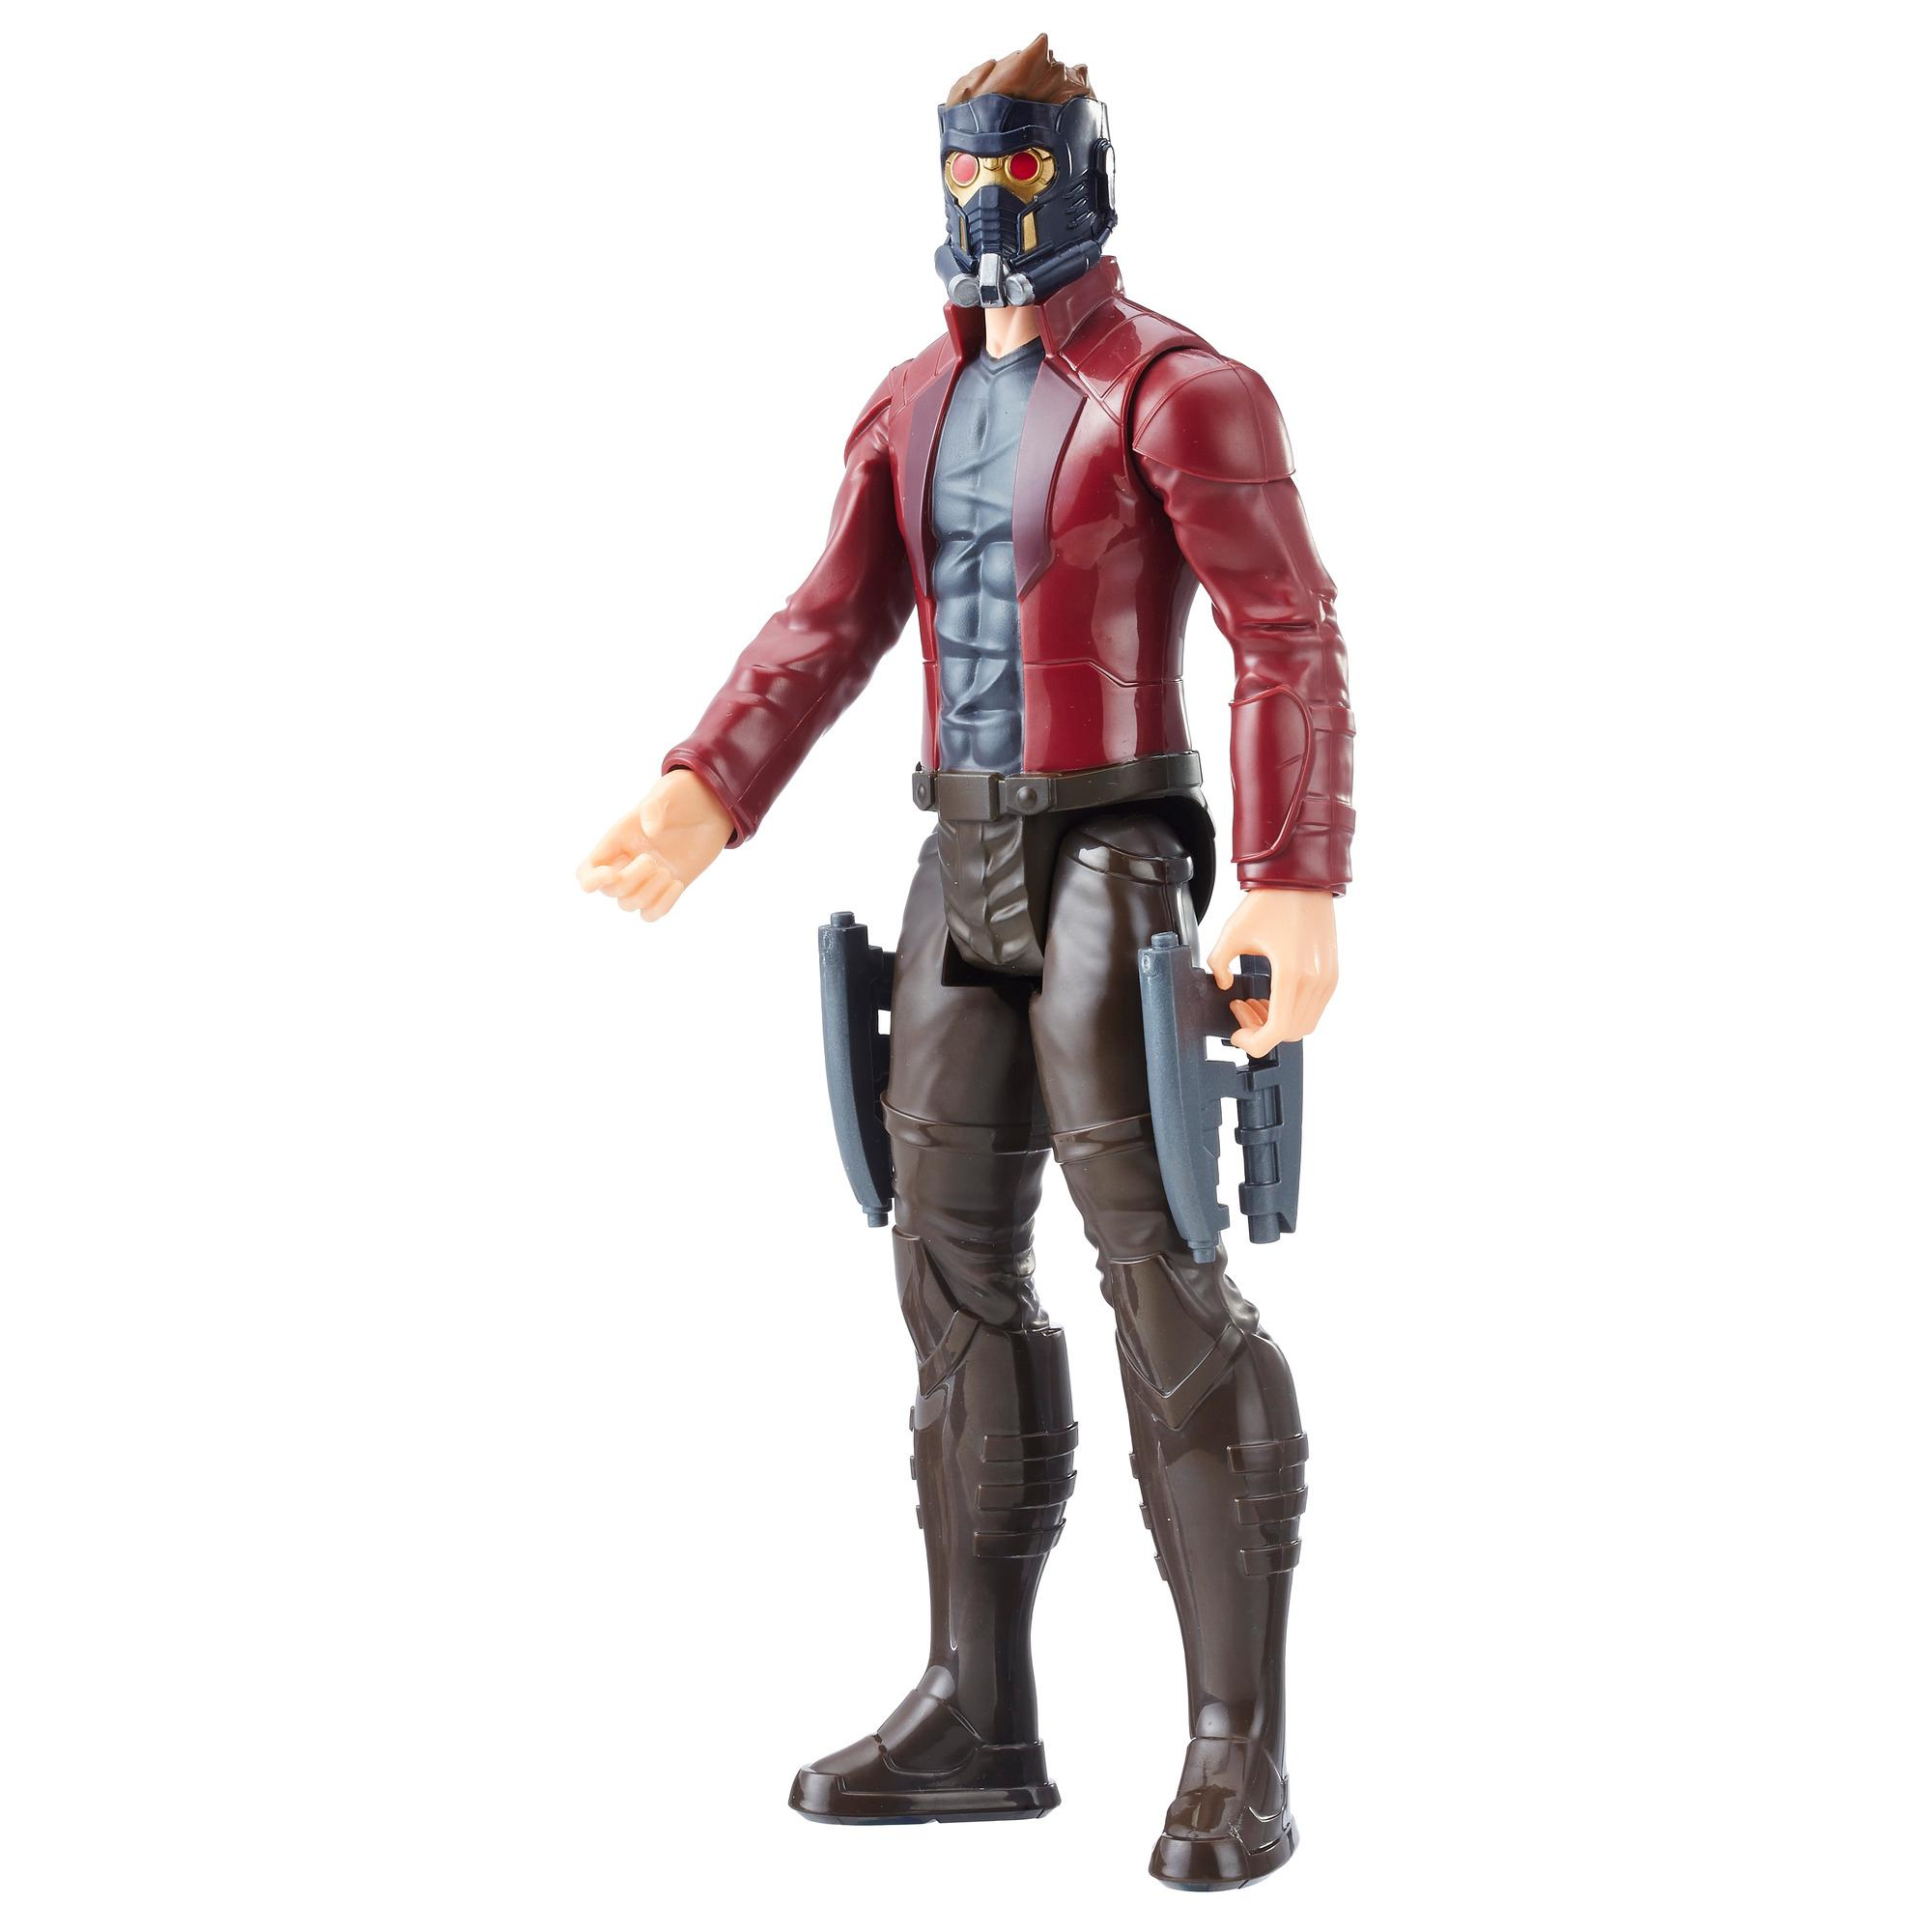 Marvel Infinity War Titan Hero Series Star-Lord with Titan Hero Power FX Port